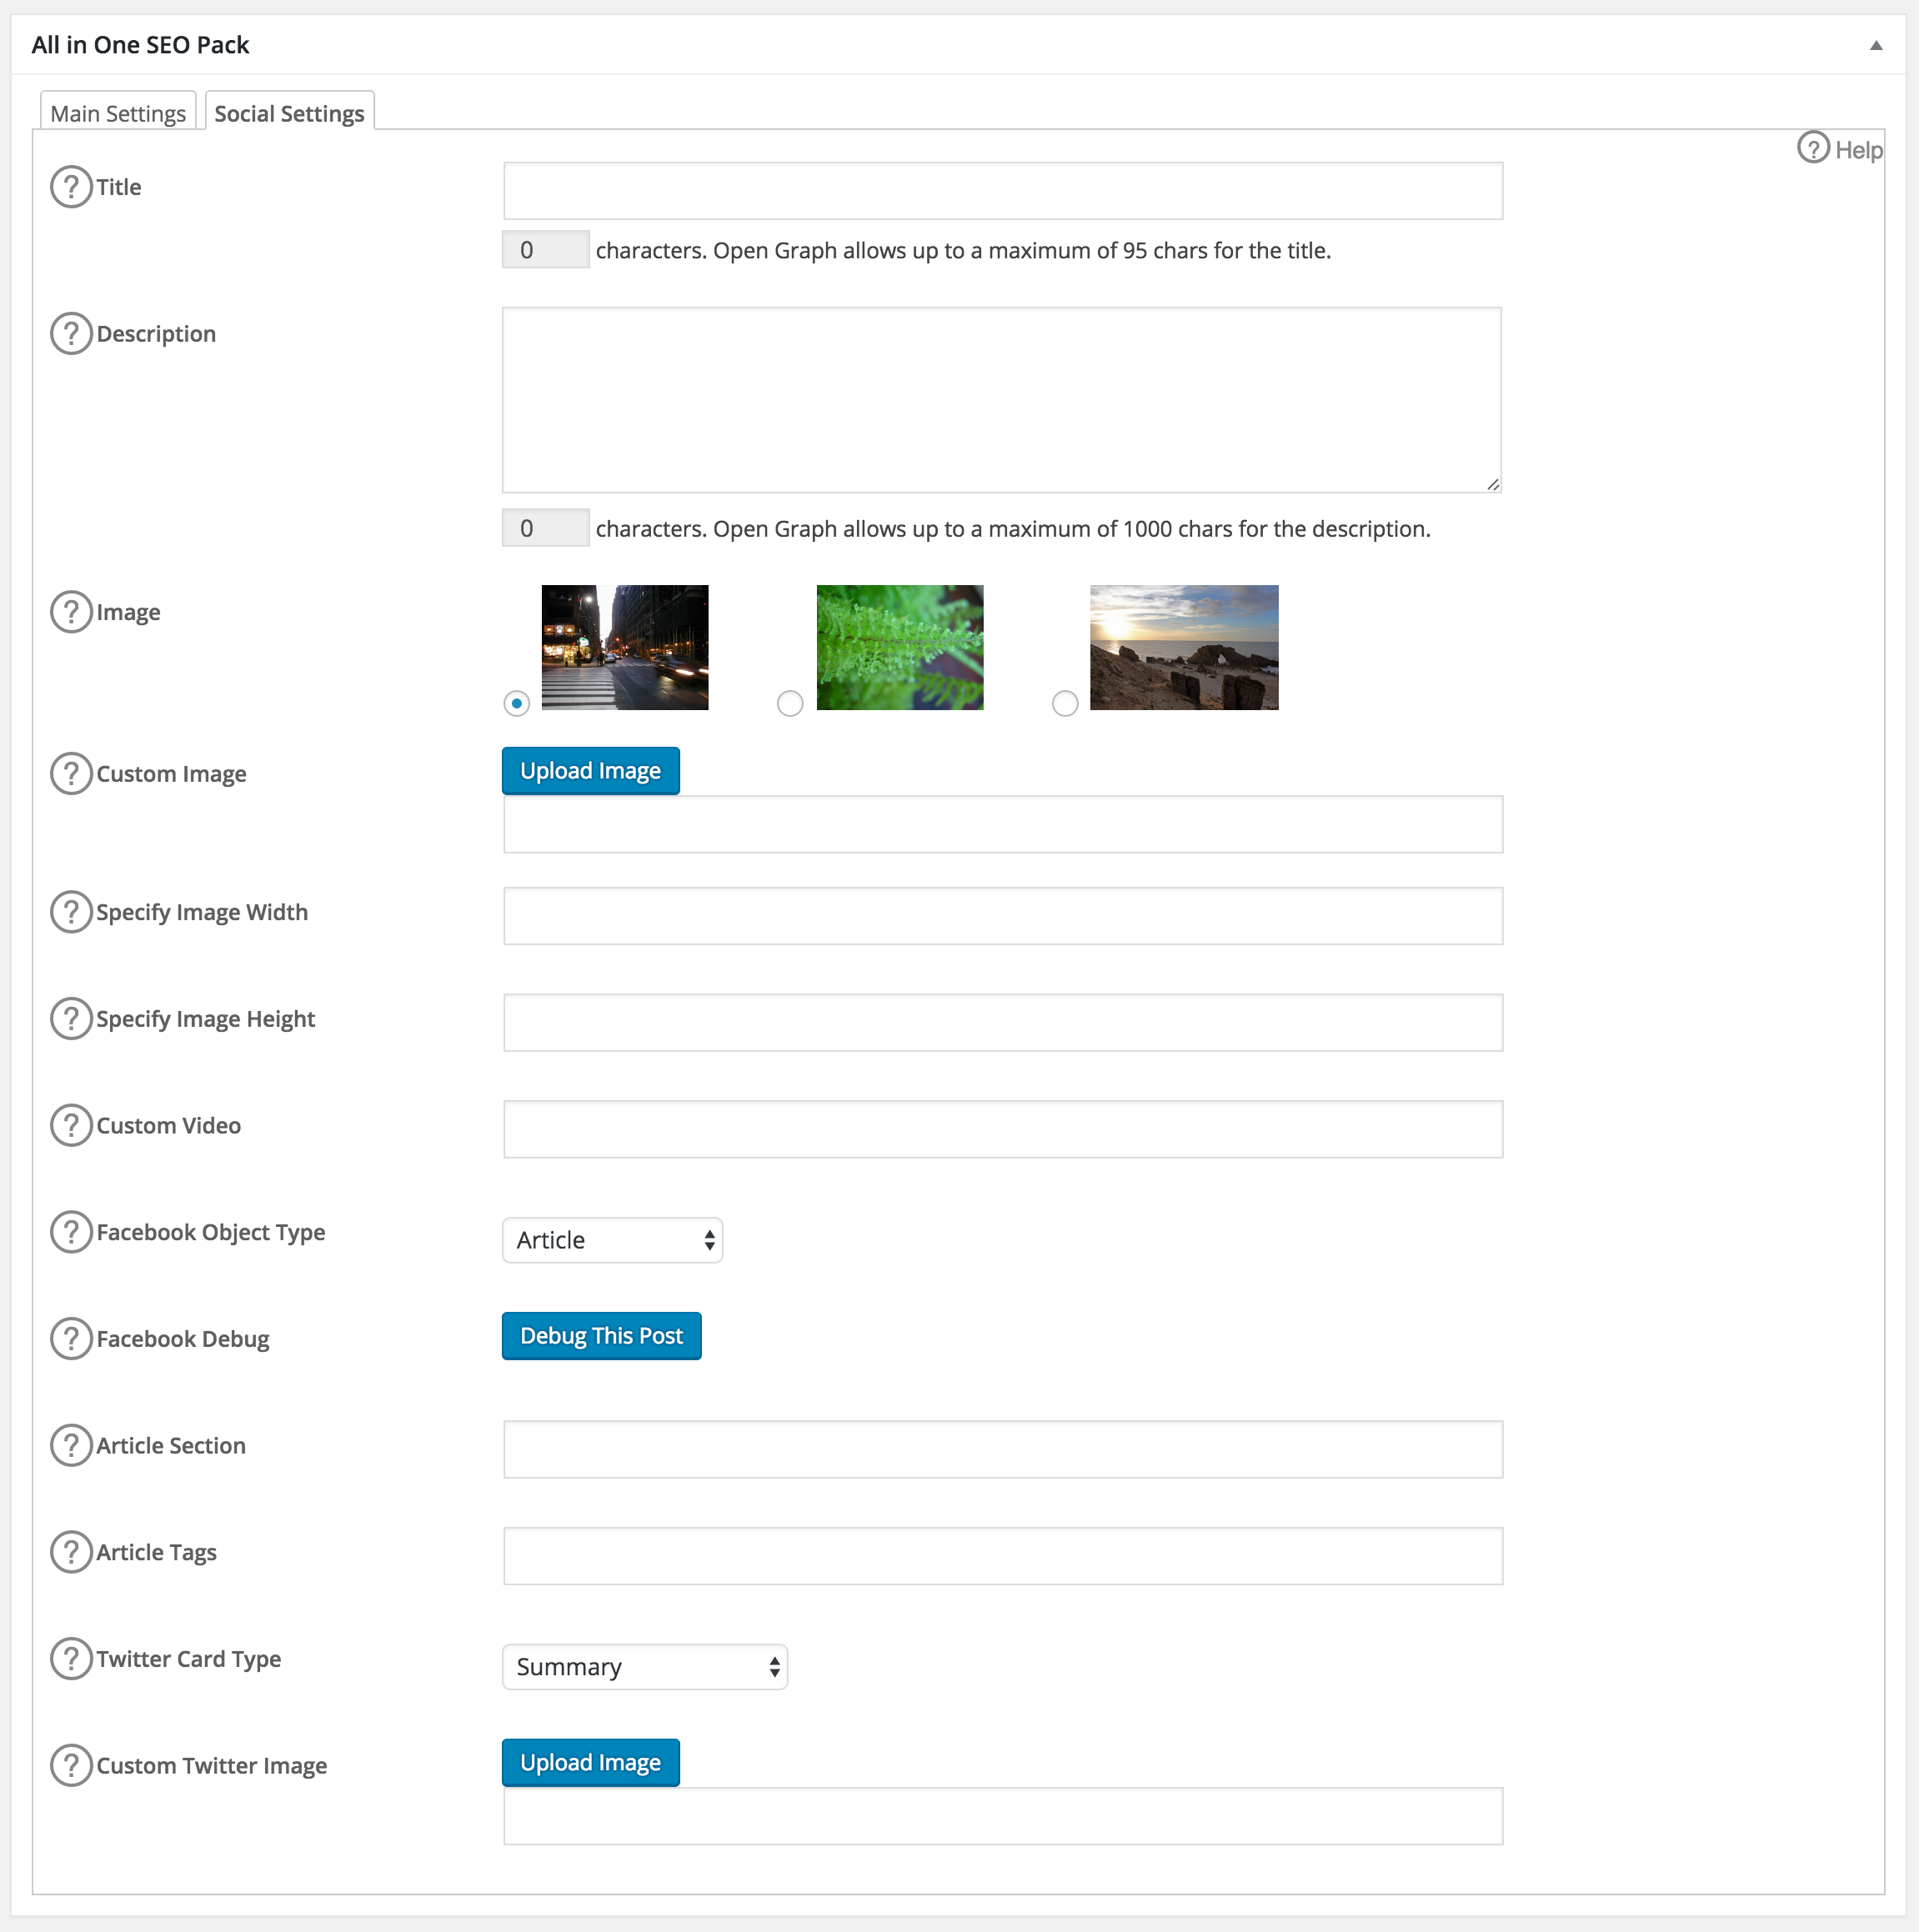 Social Settings box in All in One SEO Pack